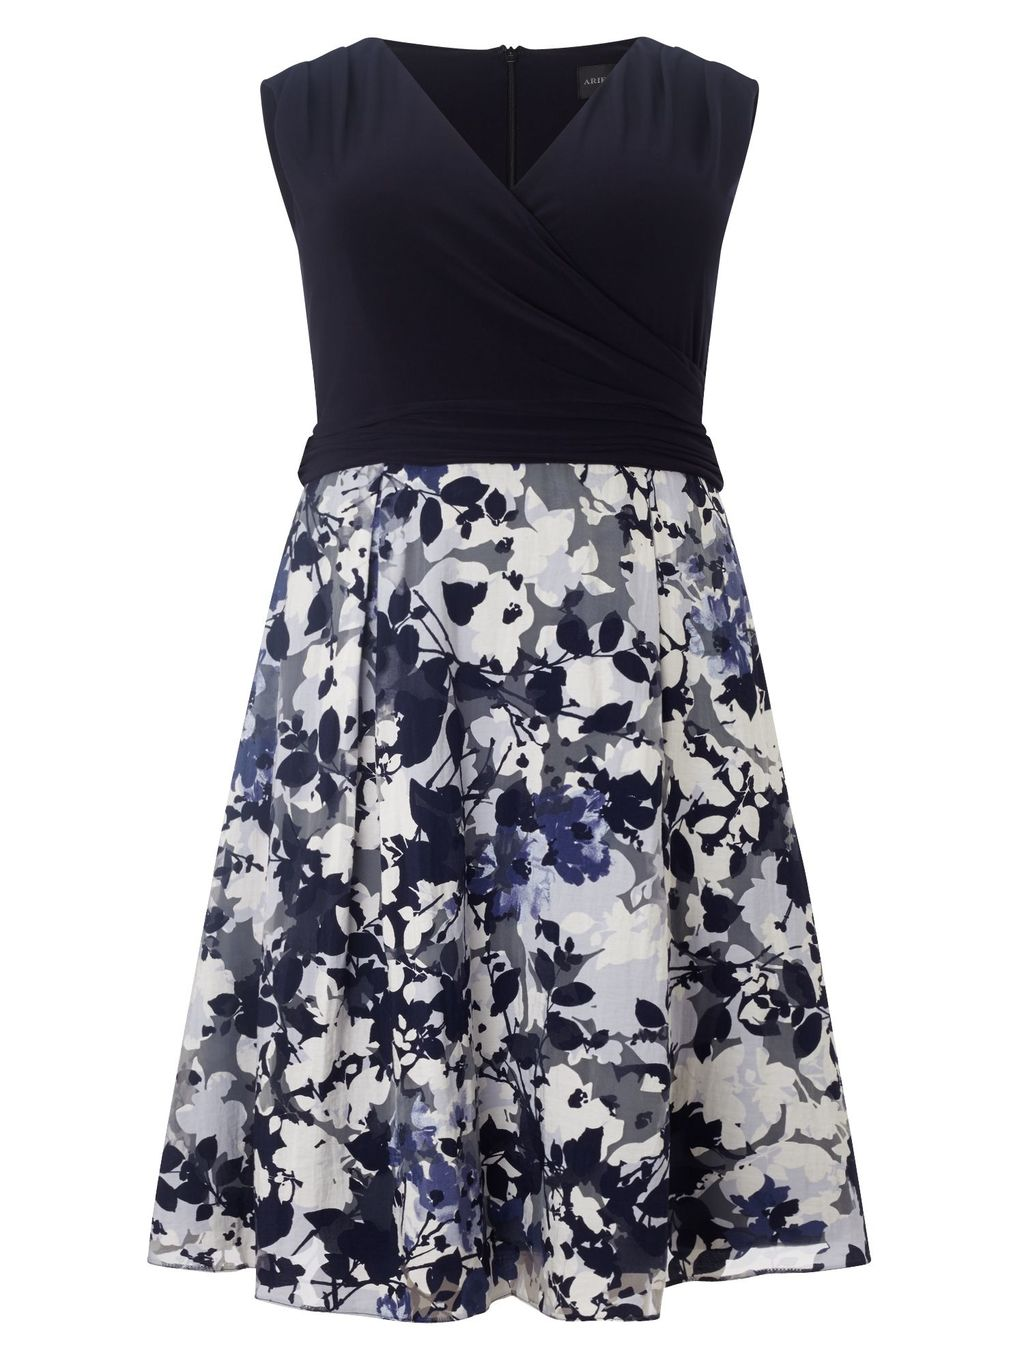 Jessy Dress, Navy - style: faux wrap/wrap; length: mid thigh; neckline: v-neck; sleeve style: sleeveless; secondary colour: ivory/cream; predominant colour: navy; fit: fitted at waist & bust; fibres: polyester/polyamide - stretch; occasions: occasion; sleeve length: sleeveless; pattern type: fabric; pattern size: standard; pattern: florals; texture group: jersey - stretchy/drapey; season: s/s 2016; wardrobe: event; embellishment: contrast fabric; embellishment location: top